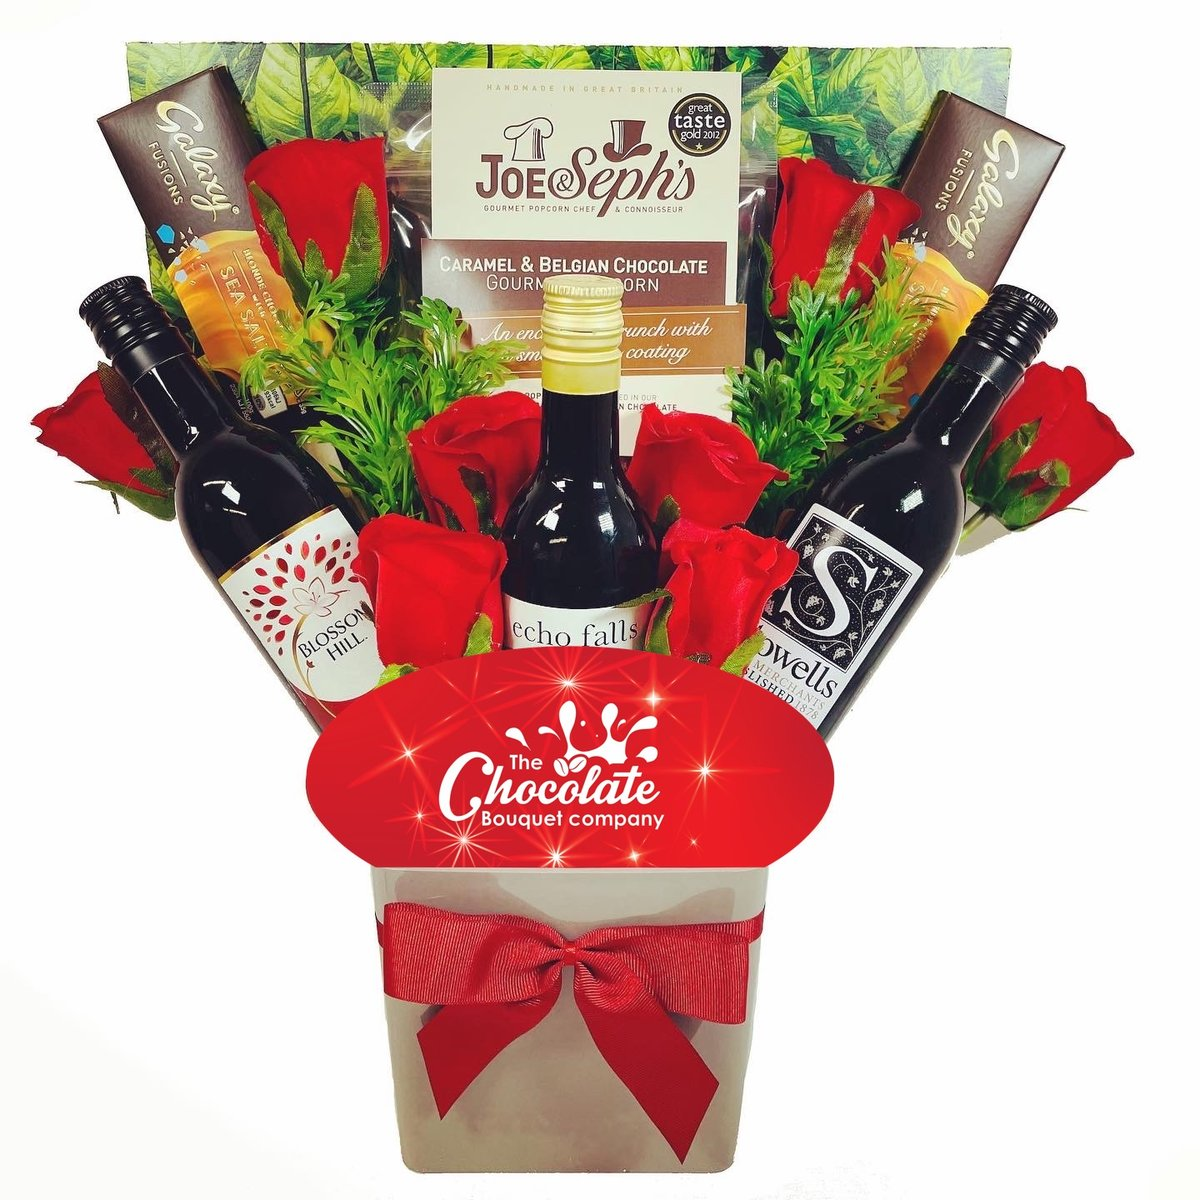 The Red Wine Lovers & Chocolates Bouquet